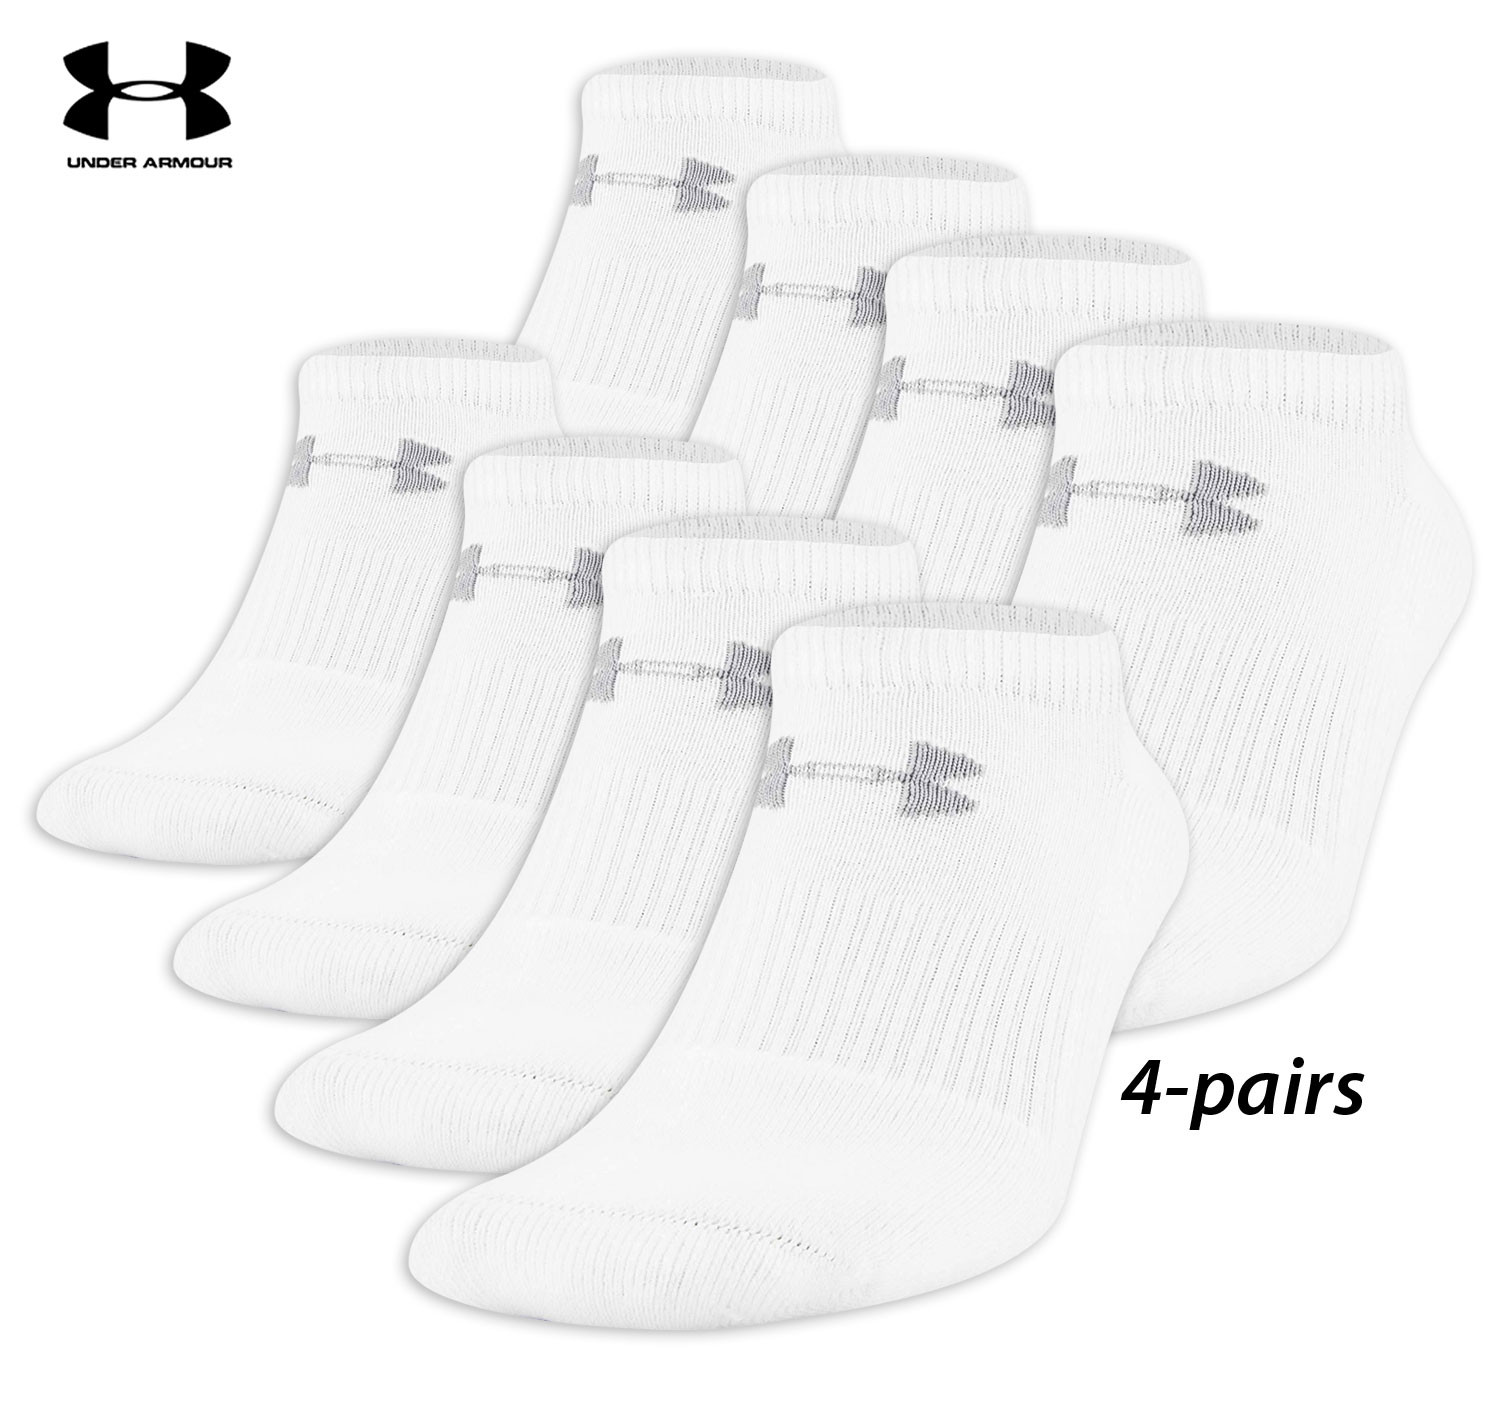 4 Pairs Under Armour All Season Performance No Show Socks